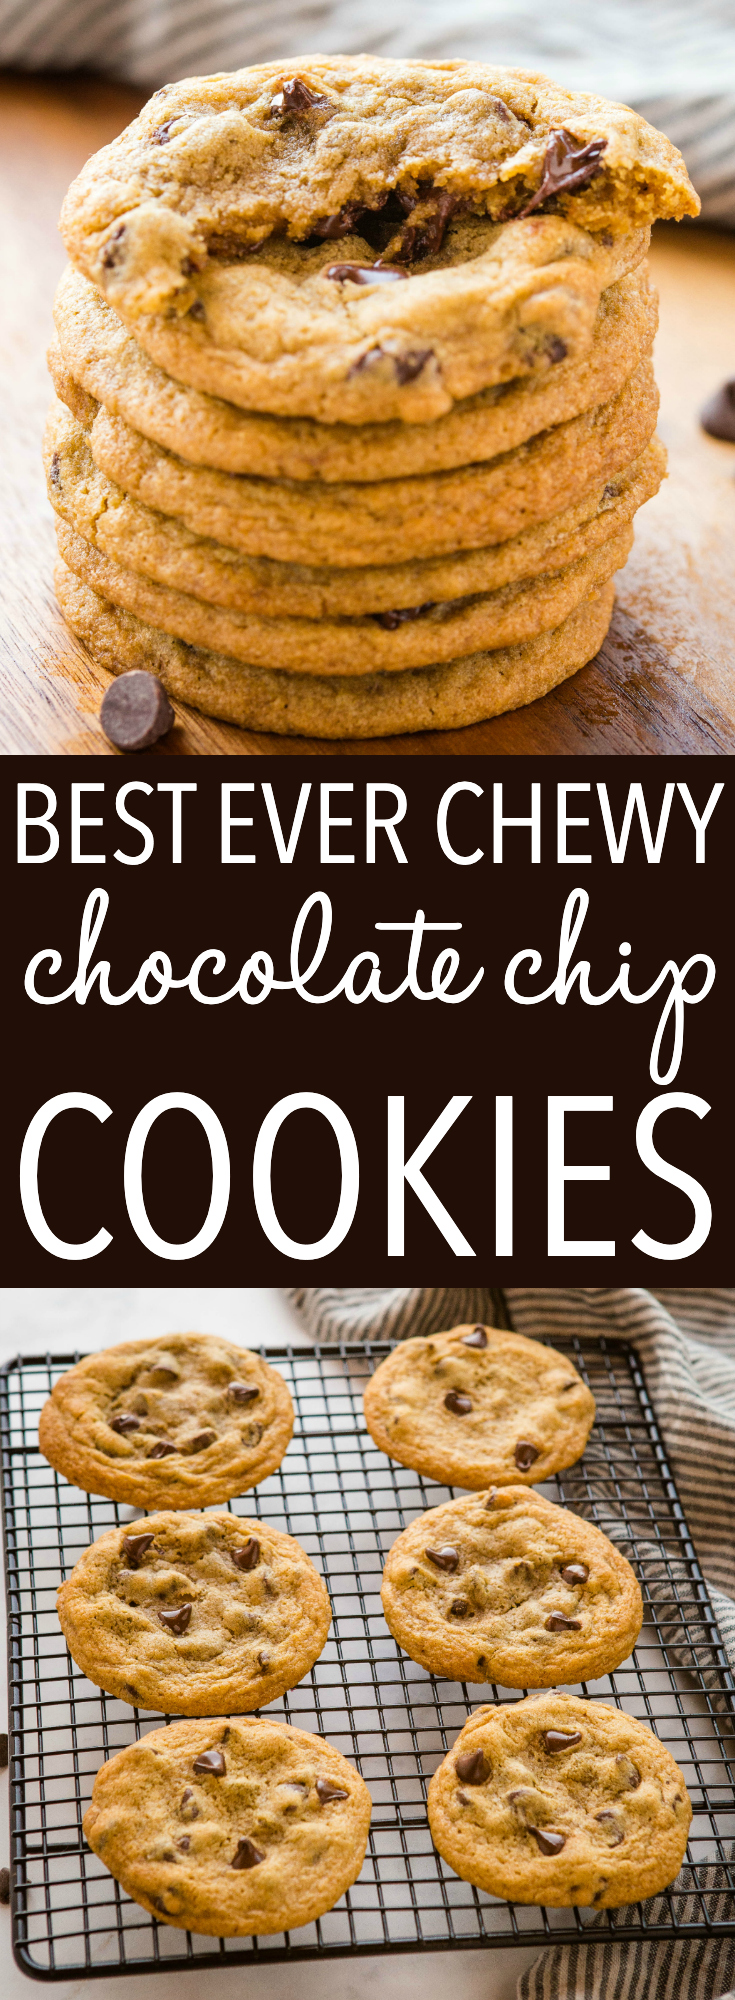 These Chewy Chocolate Chip Cookies are soft and chewy on the inside and crispy on the outside - the PERFECT chocolate chip cookies with pro tips! Recipe from thebusybaker.ca #perfectchocolatechipcookies #chewychocolatechipcookies #homemadecookies #baking #chocolatechips #afterschool #homemade #familyrecipe via @busybakerblog